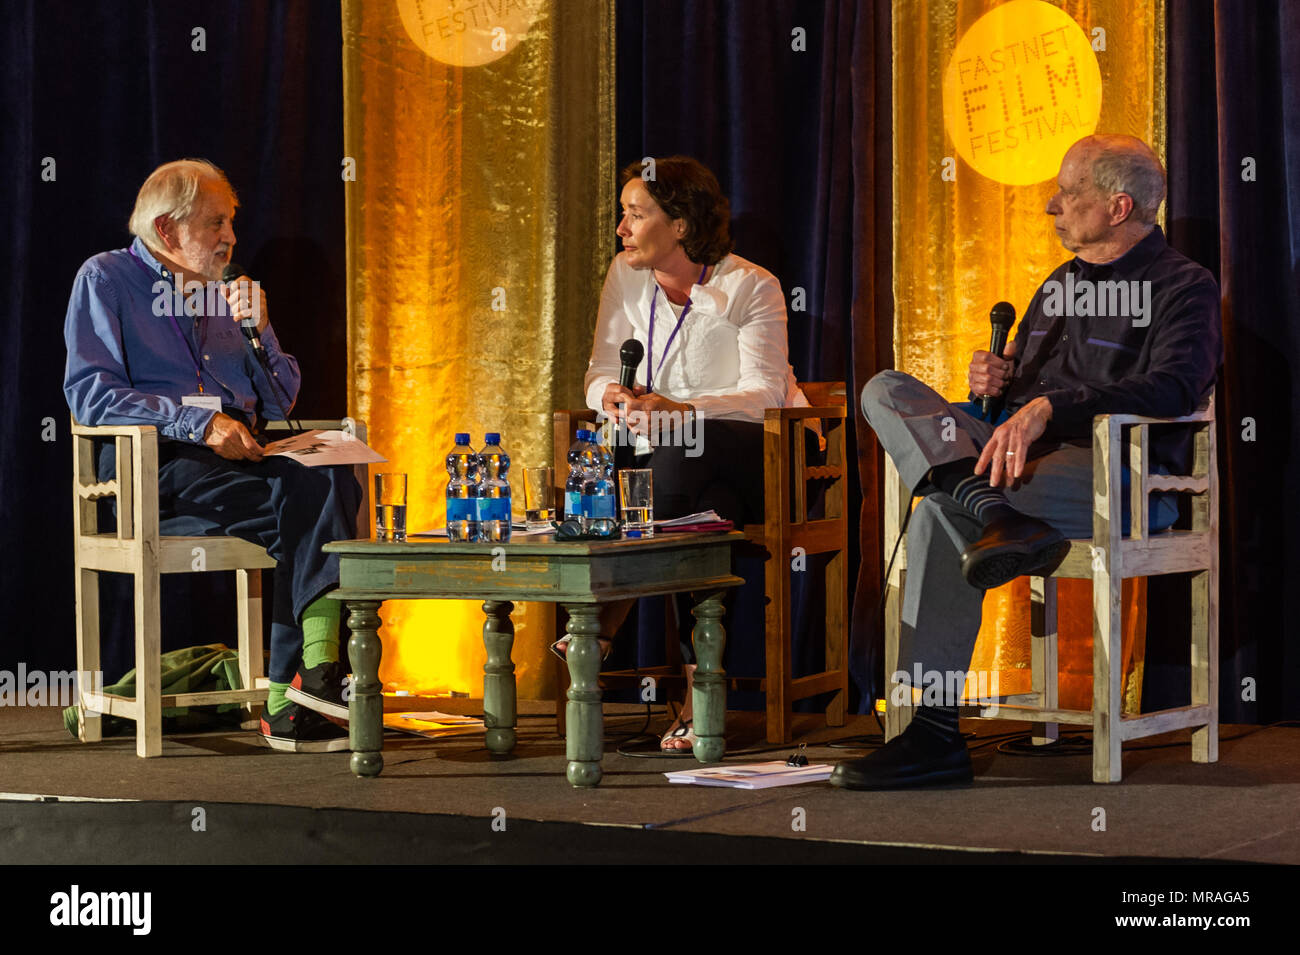 Schull, Ireland. 26th May, 2018. As part of the film festival, film producer Lord David Puttnam (far left) is pictured in conversation with Gwenda Young and Sandy Lieberson in a talk called 'Battle of the Sexes' which discussed gender parity. The festival runs until Sunday. Credit: Andy Gibson/Alamy Live News. - Stock Image